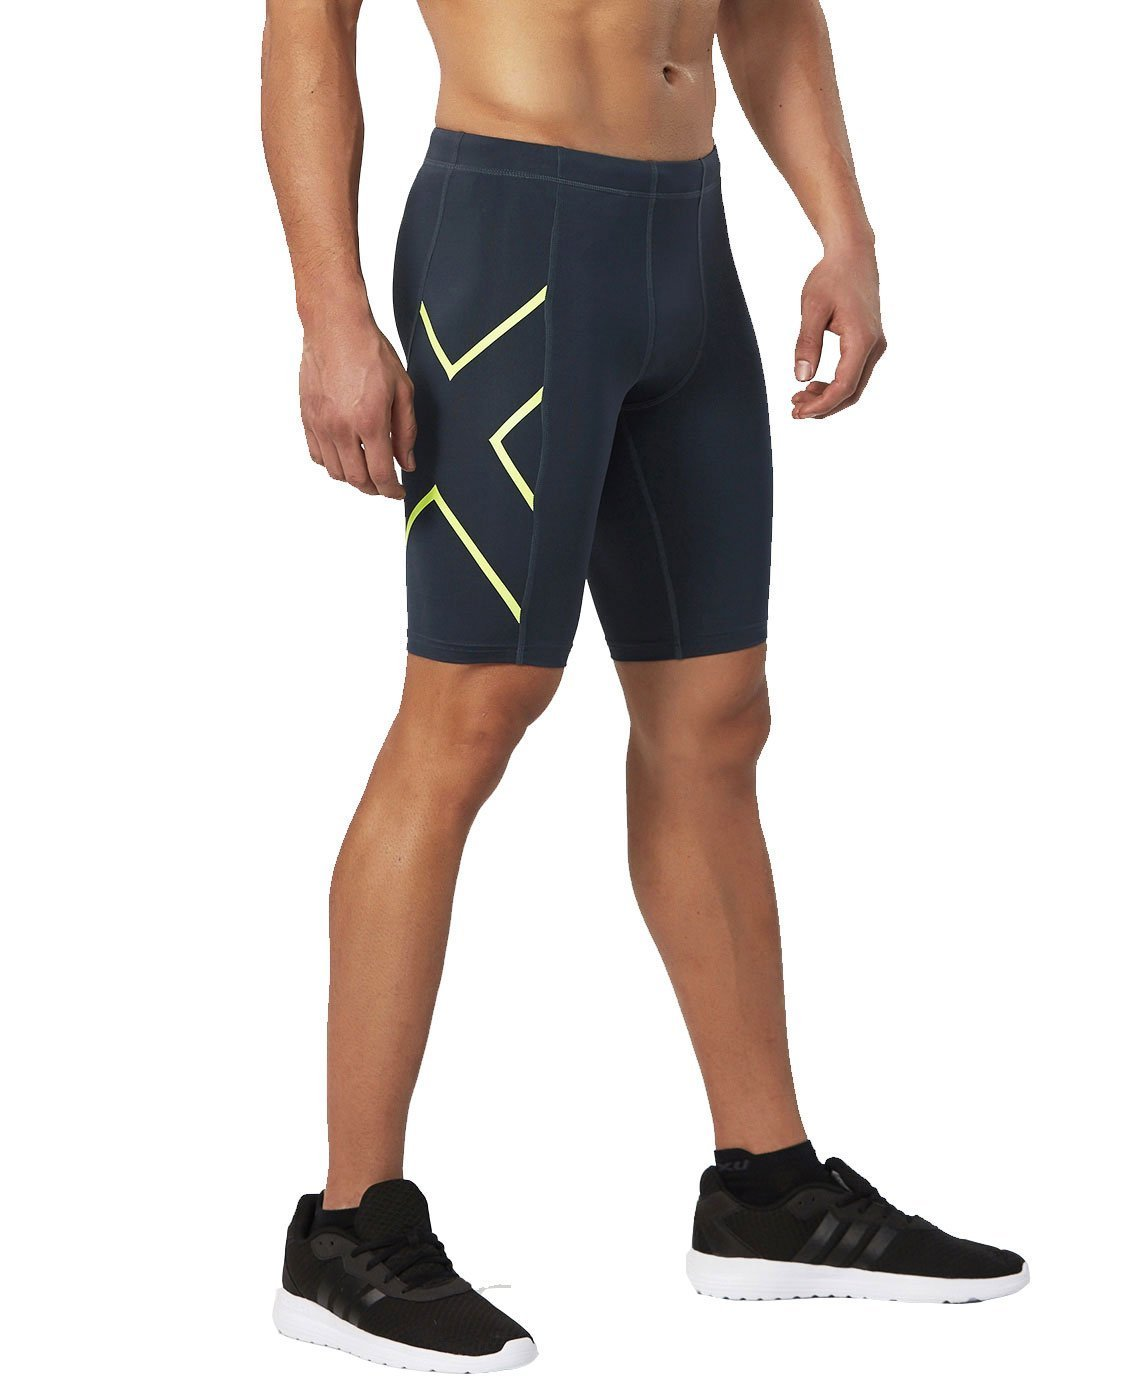 2XU Men's Core Compression Shorts 2XU Pty Ltd MA3851b-P